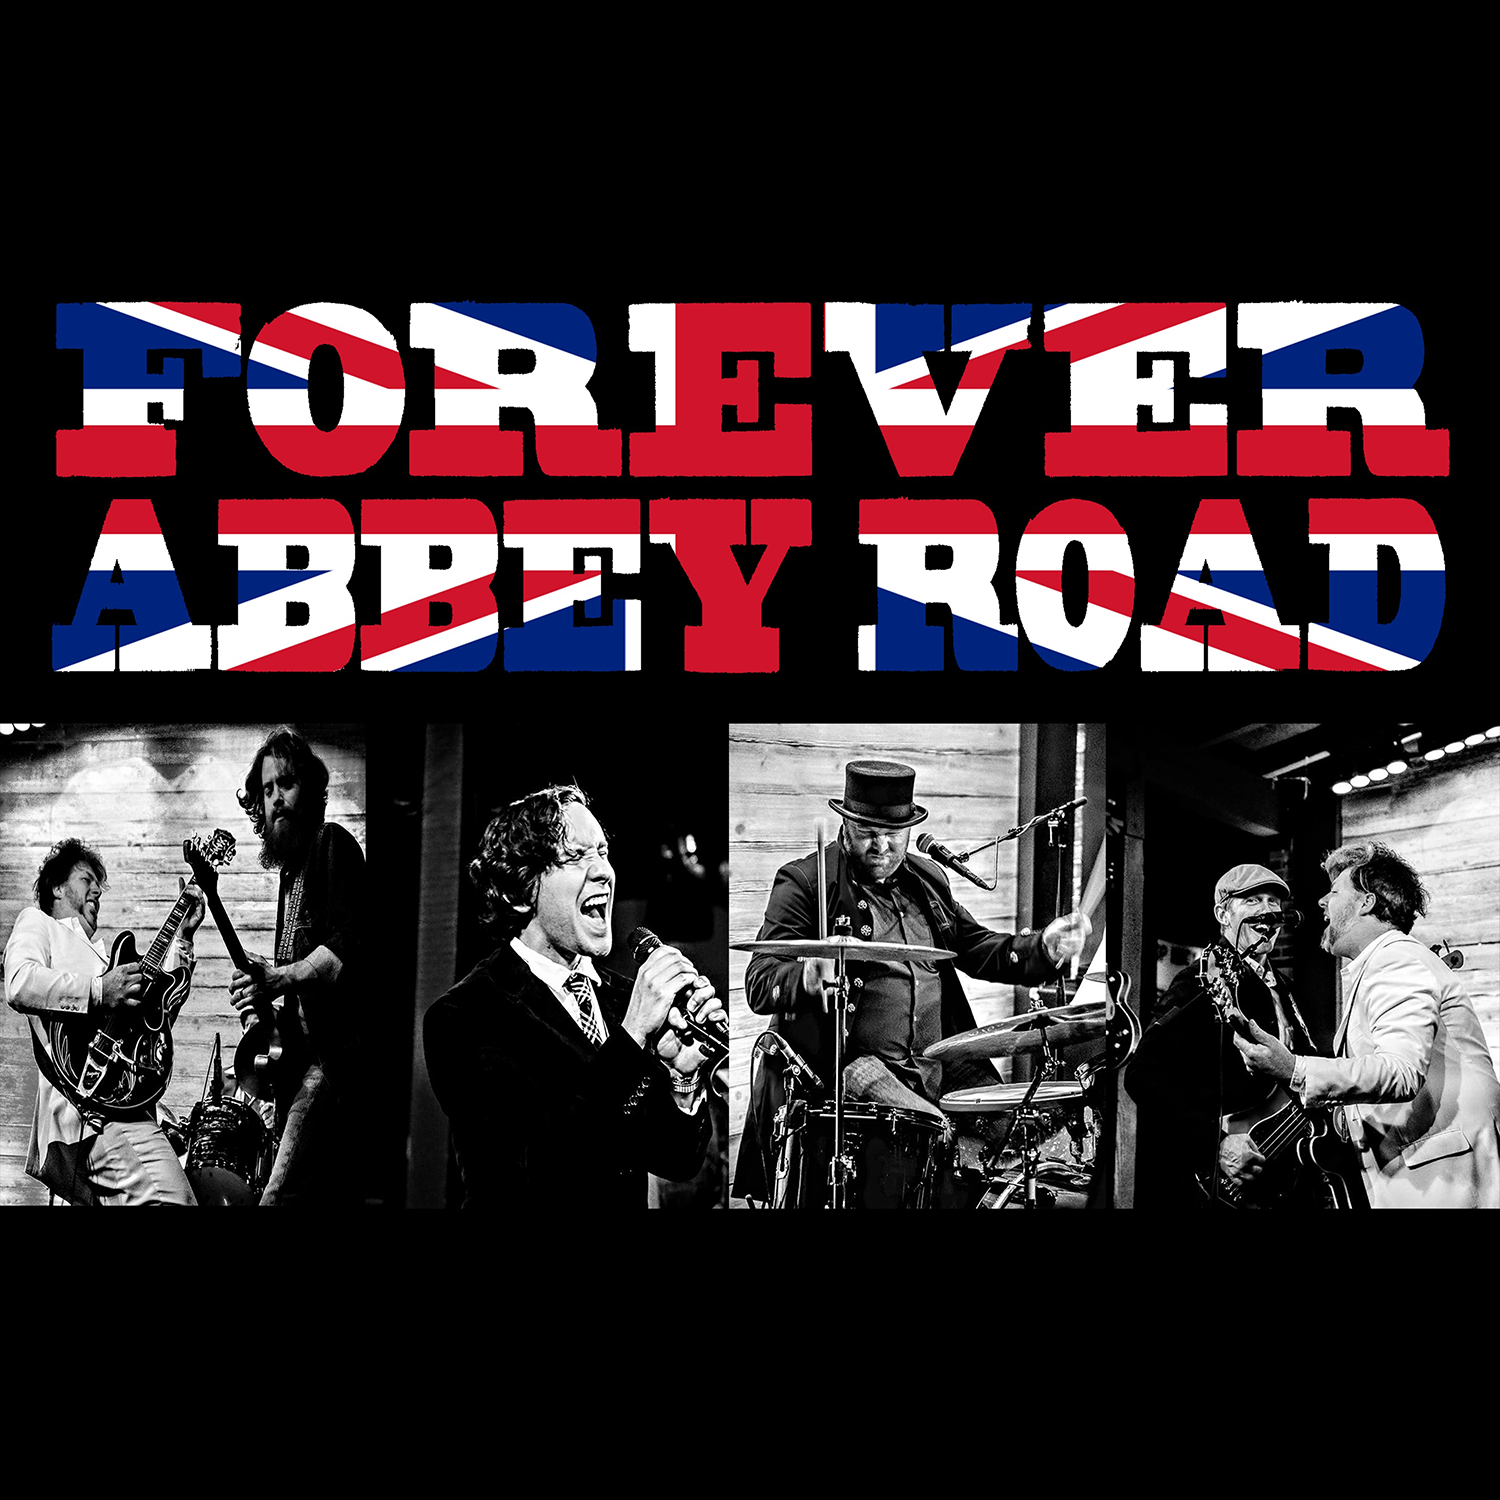 FOREVER ABBEY ROAD